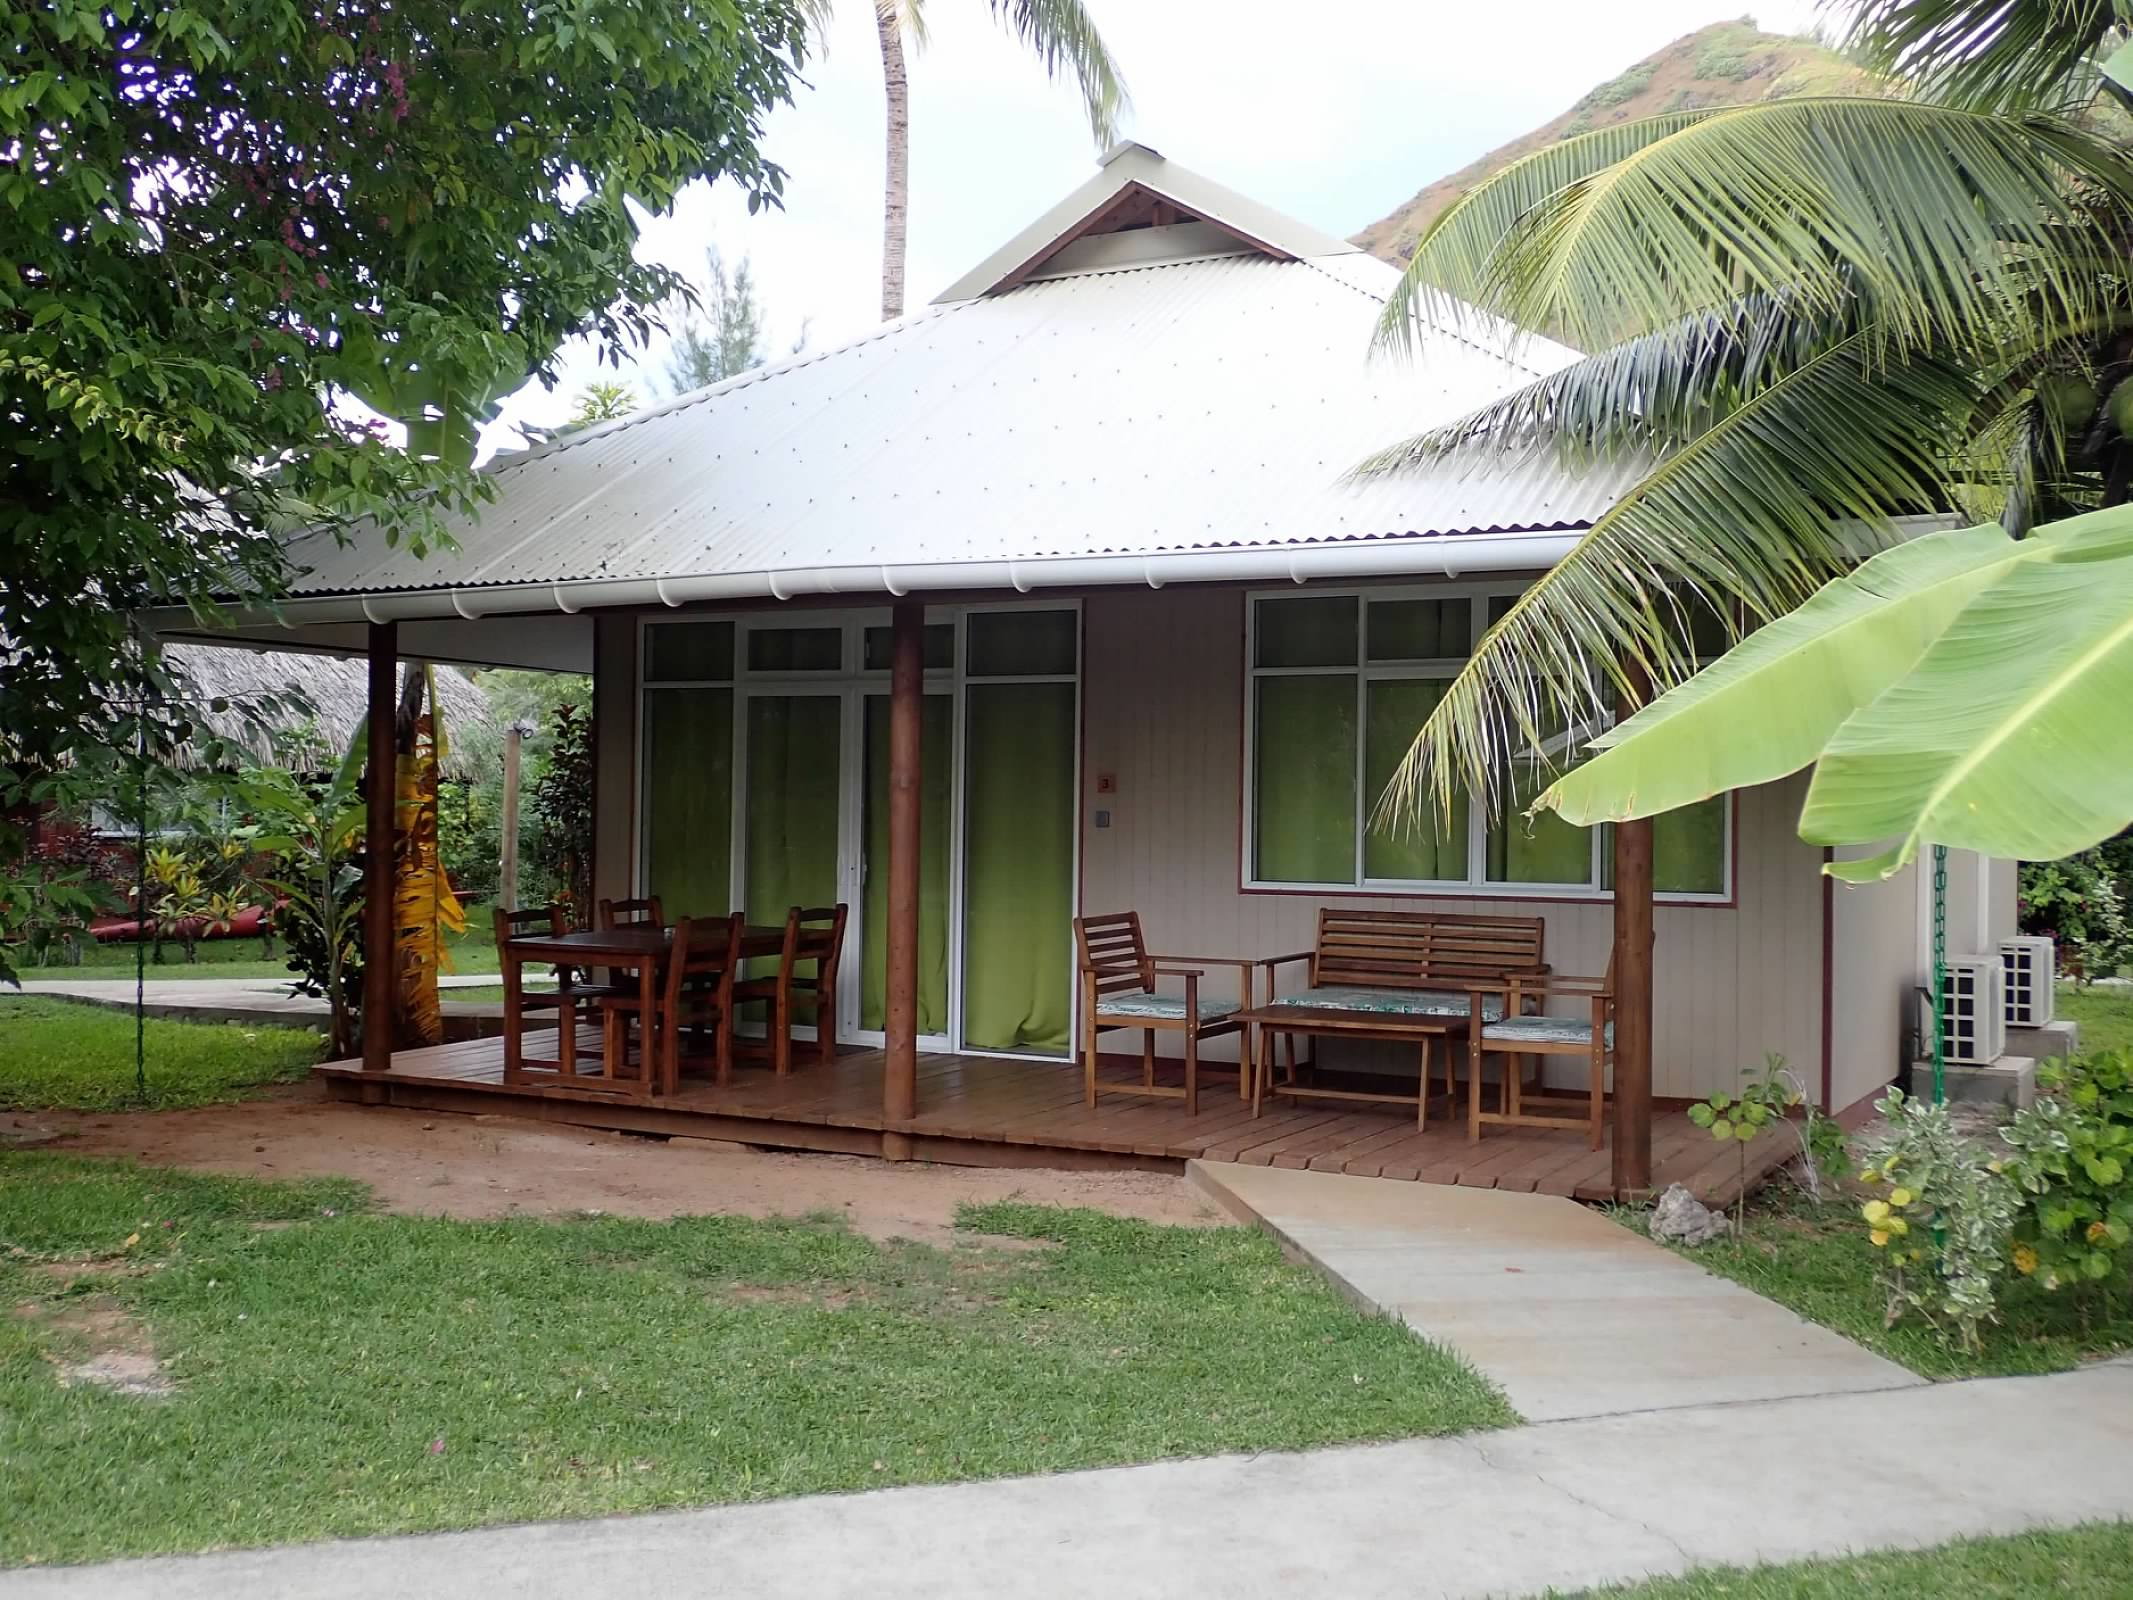 Our Bungalow Also Had A Full Sized Kitchen With Stove, Refrigerator